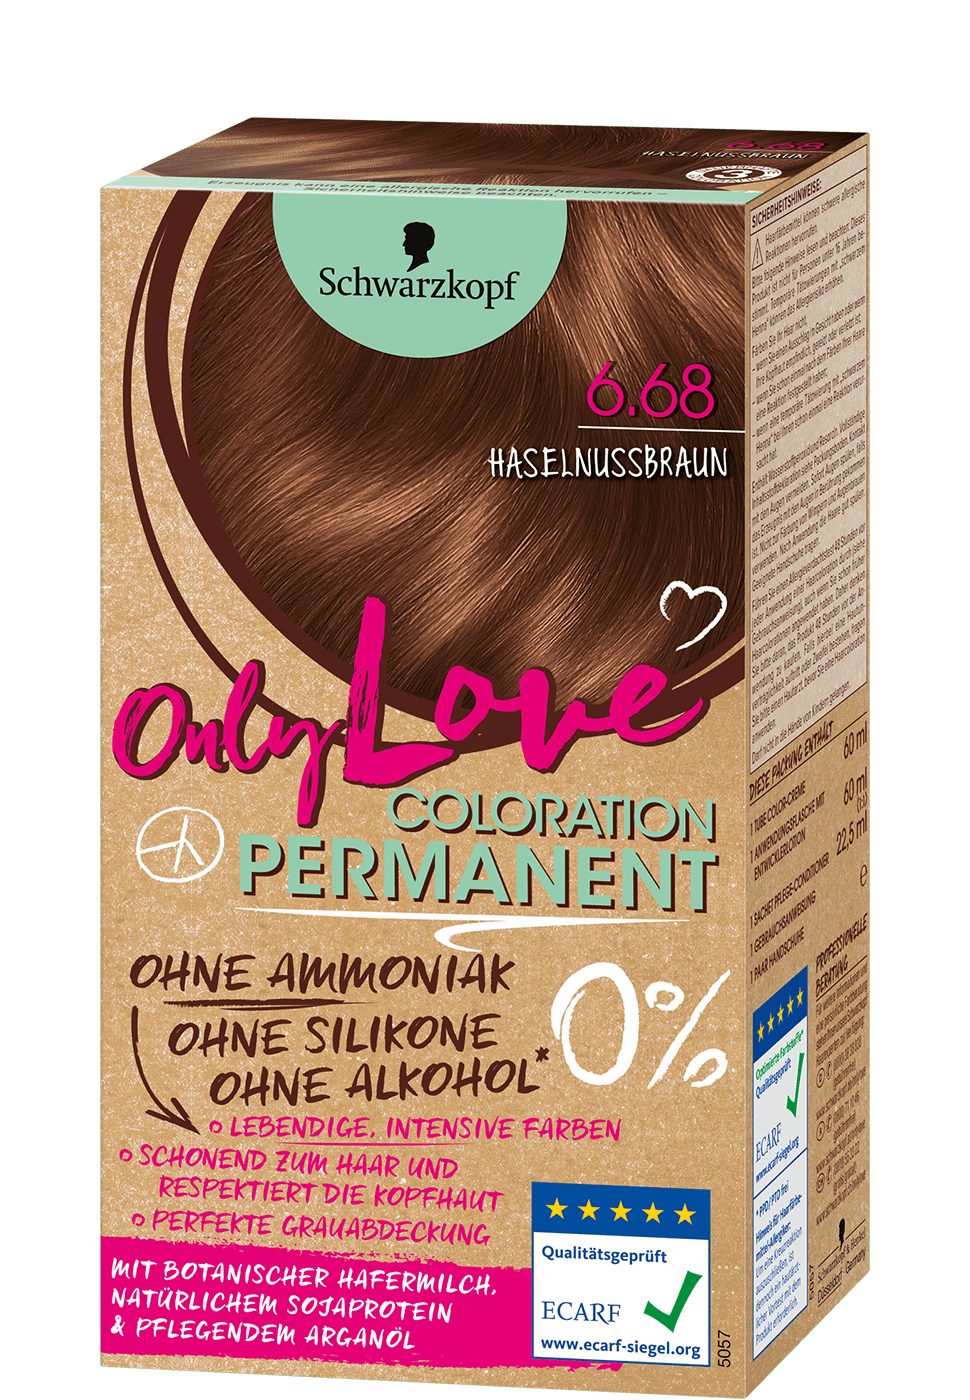 only_love_de_coloration_permanent_6_68_haselnussbraun_970x1400